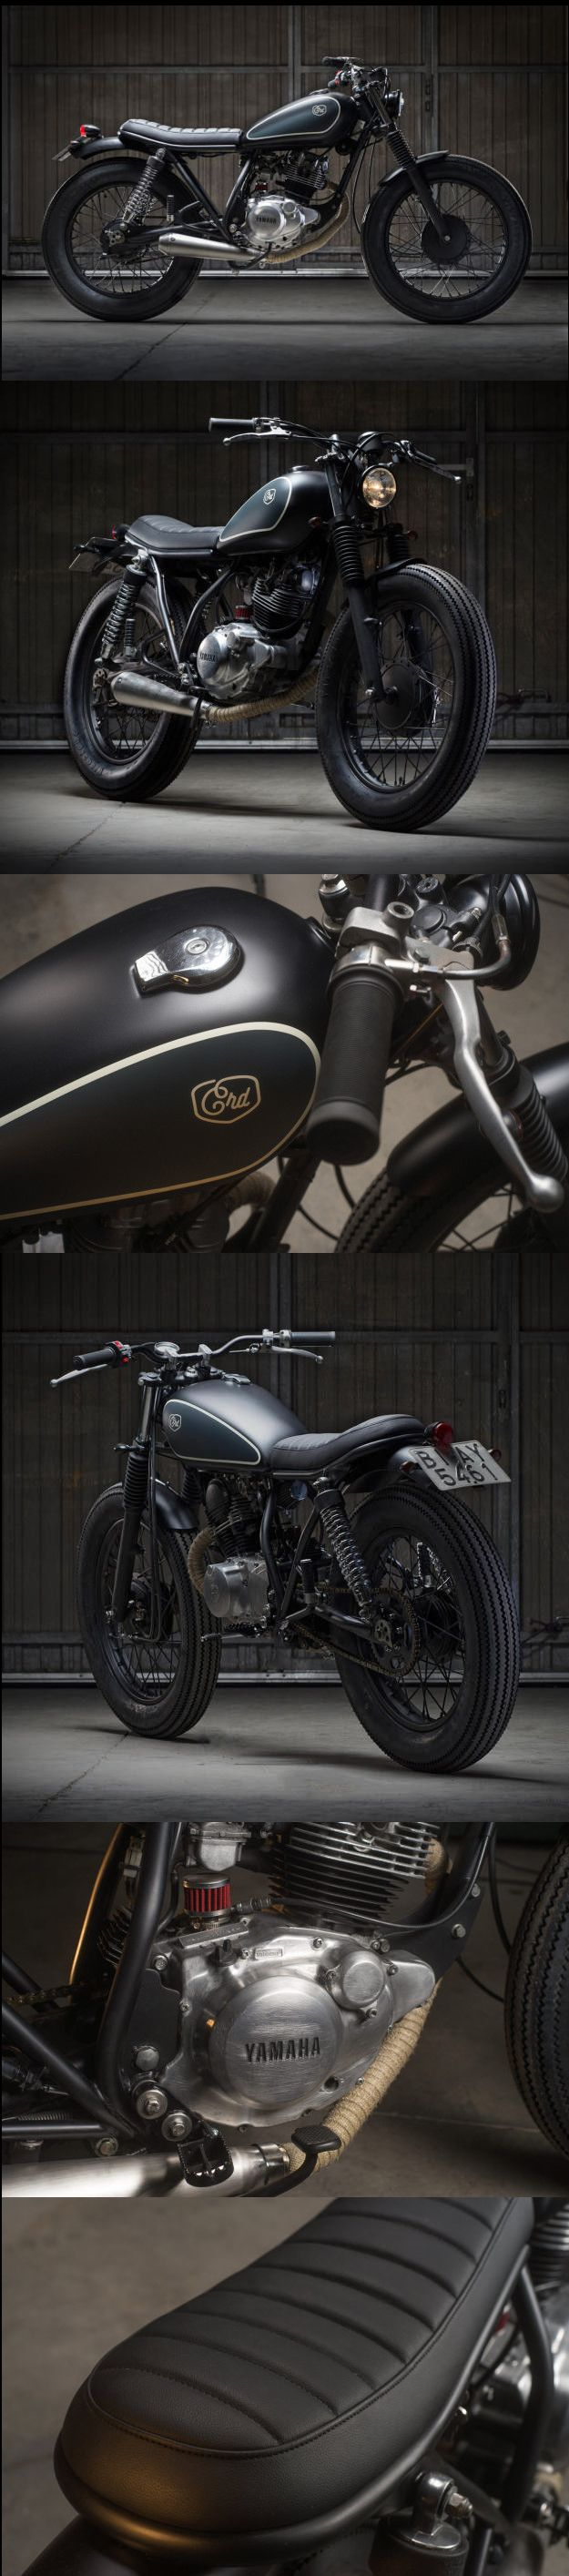 Yamaha SR125 Little Baby by Cafe Racer Dreams